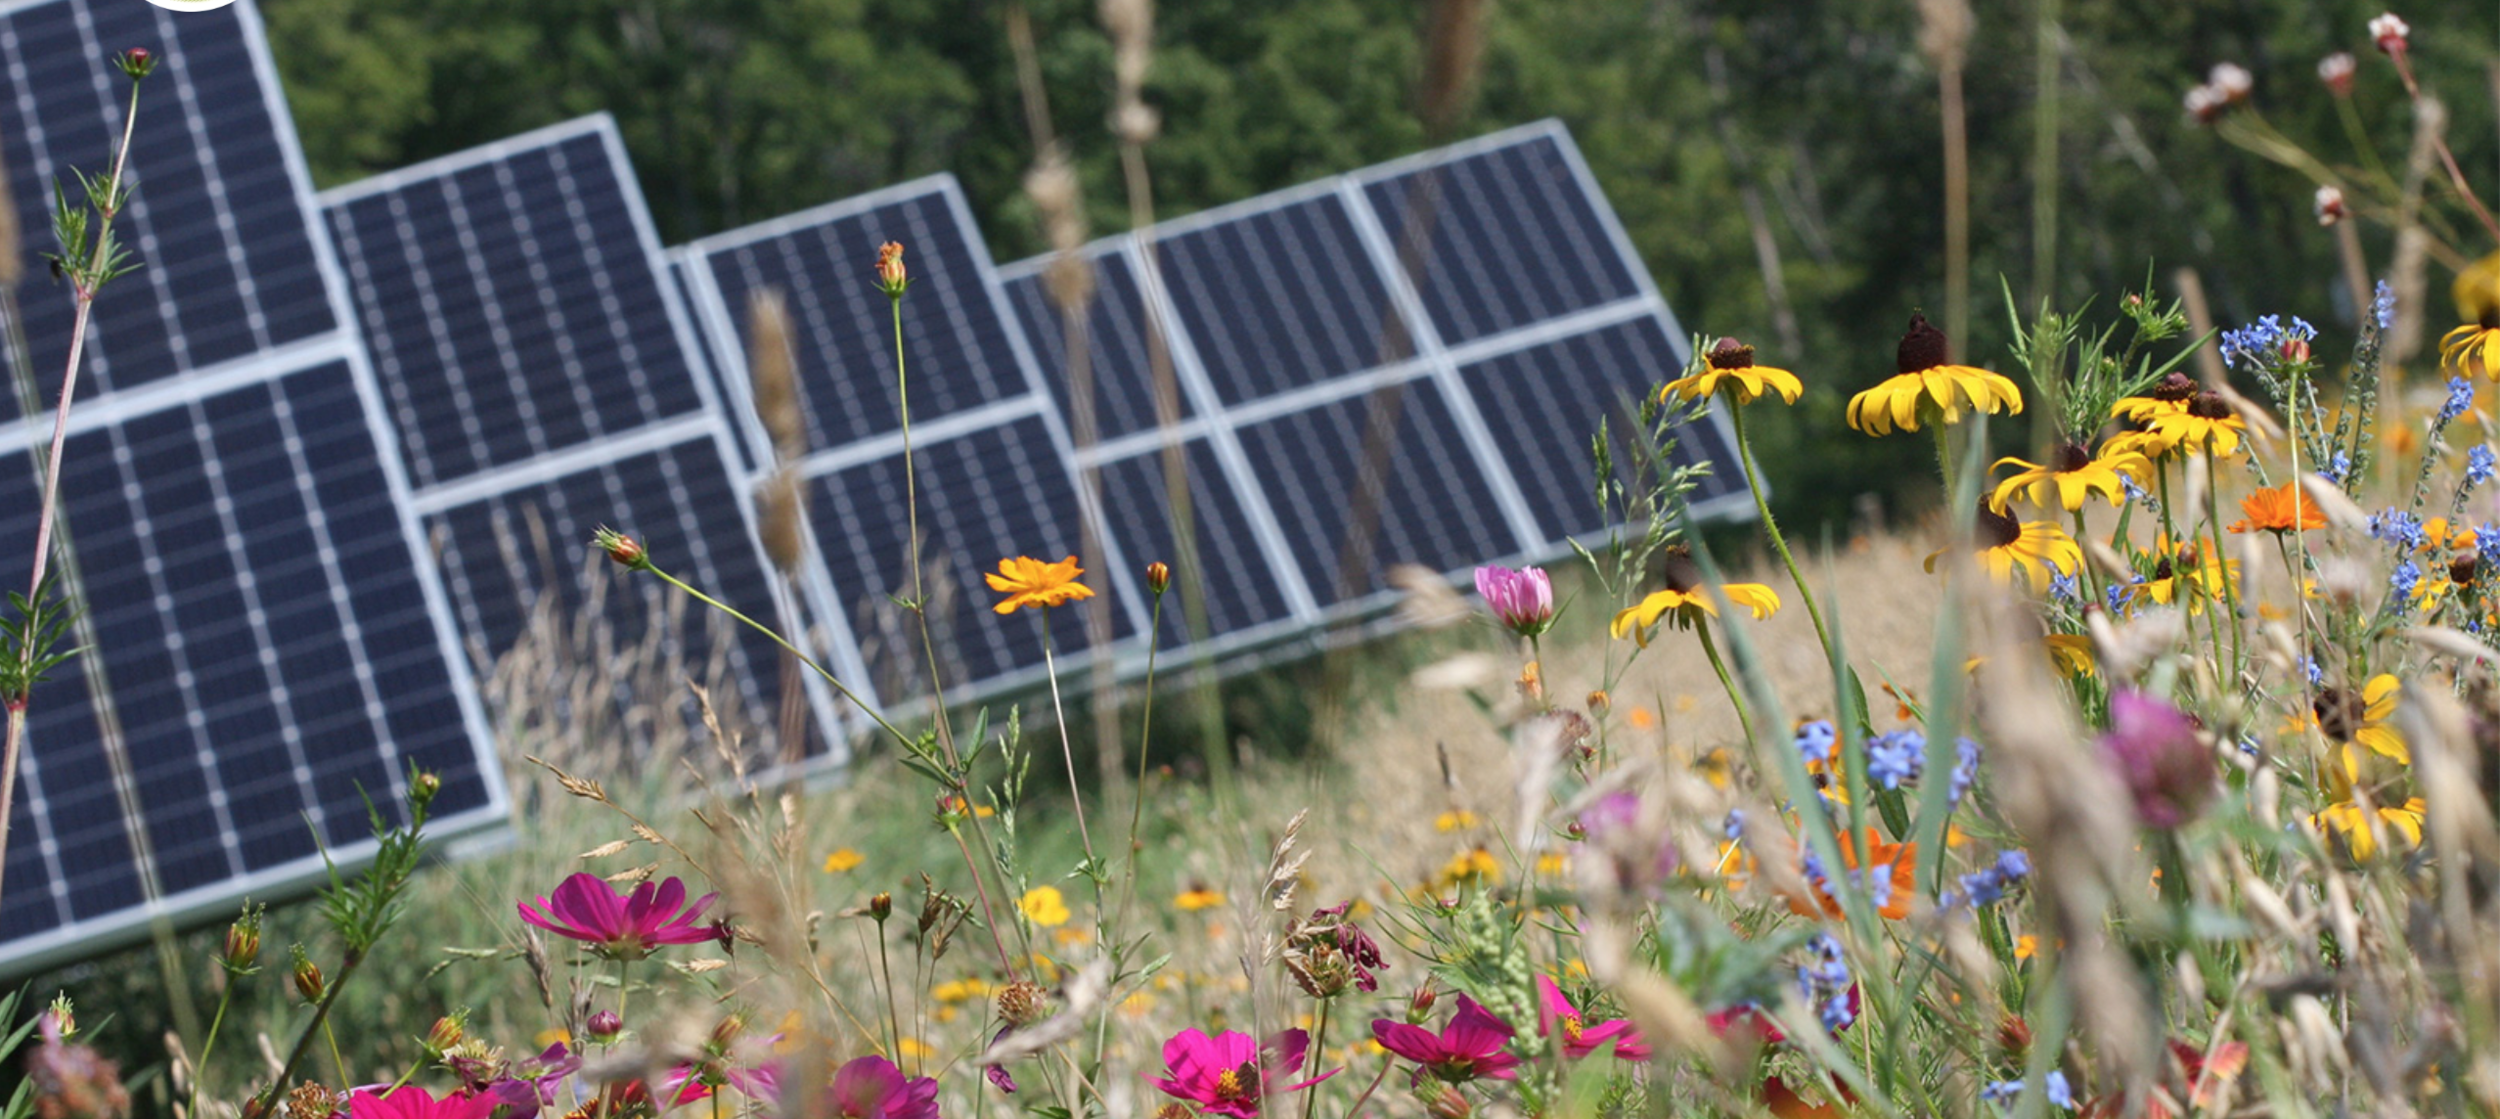 Bee-Friendly Solar is a Win-Win-Win for People, Planet and Pollinators -